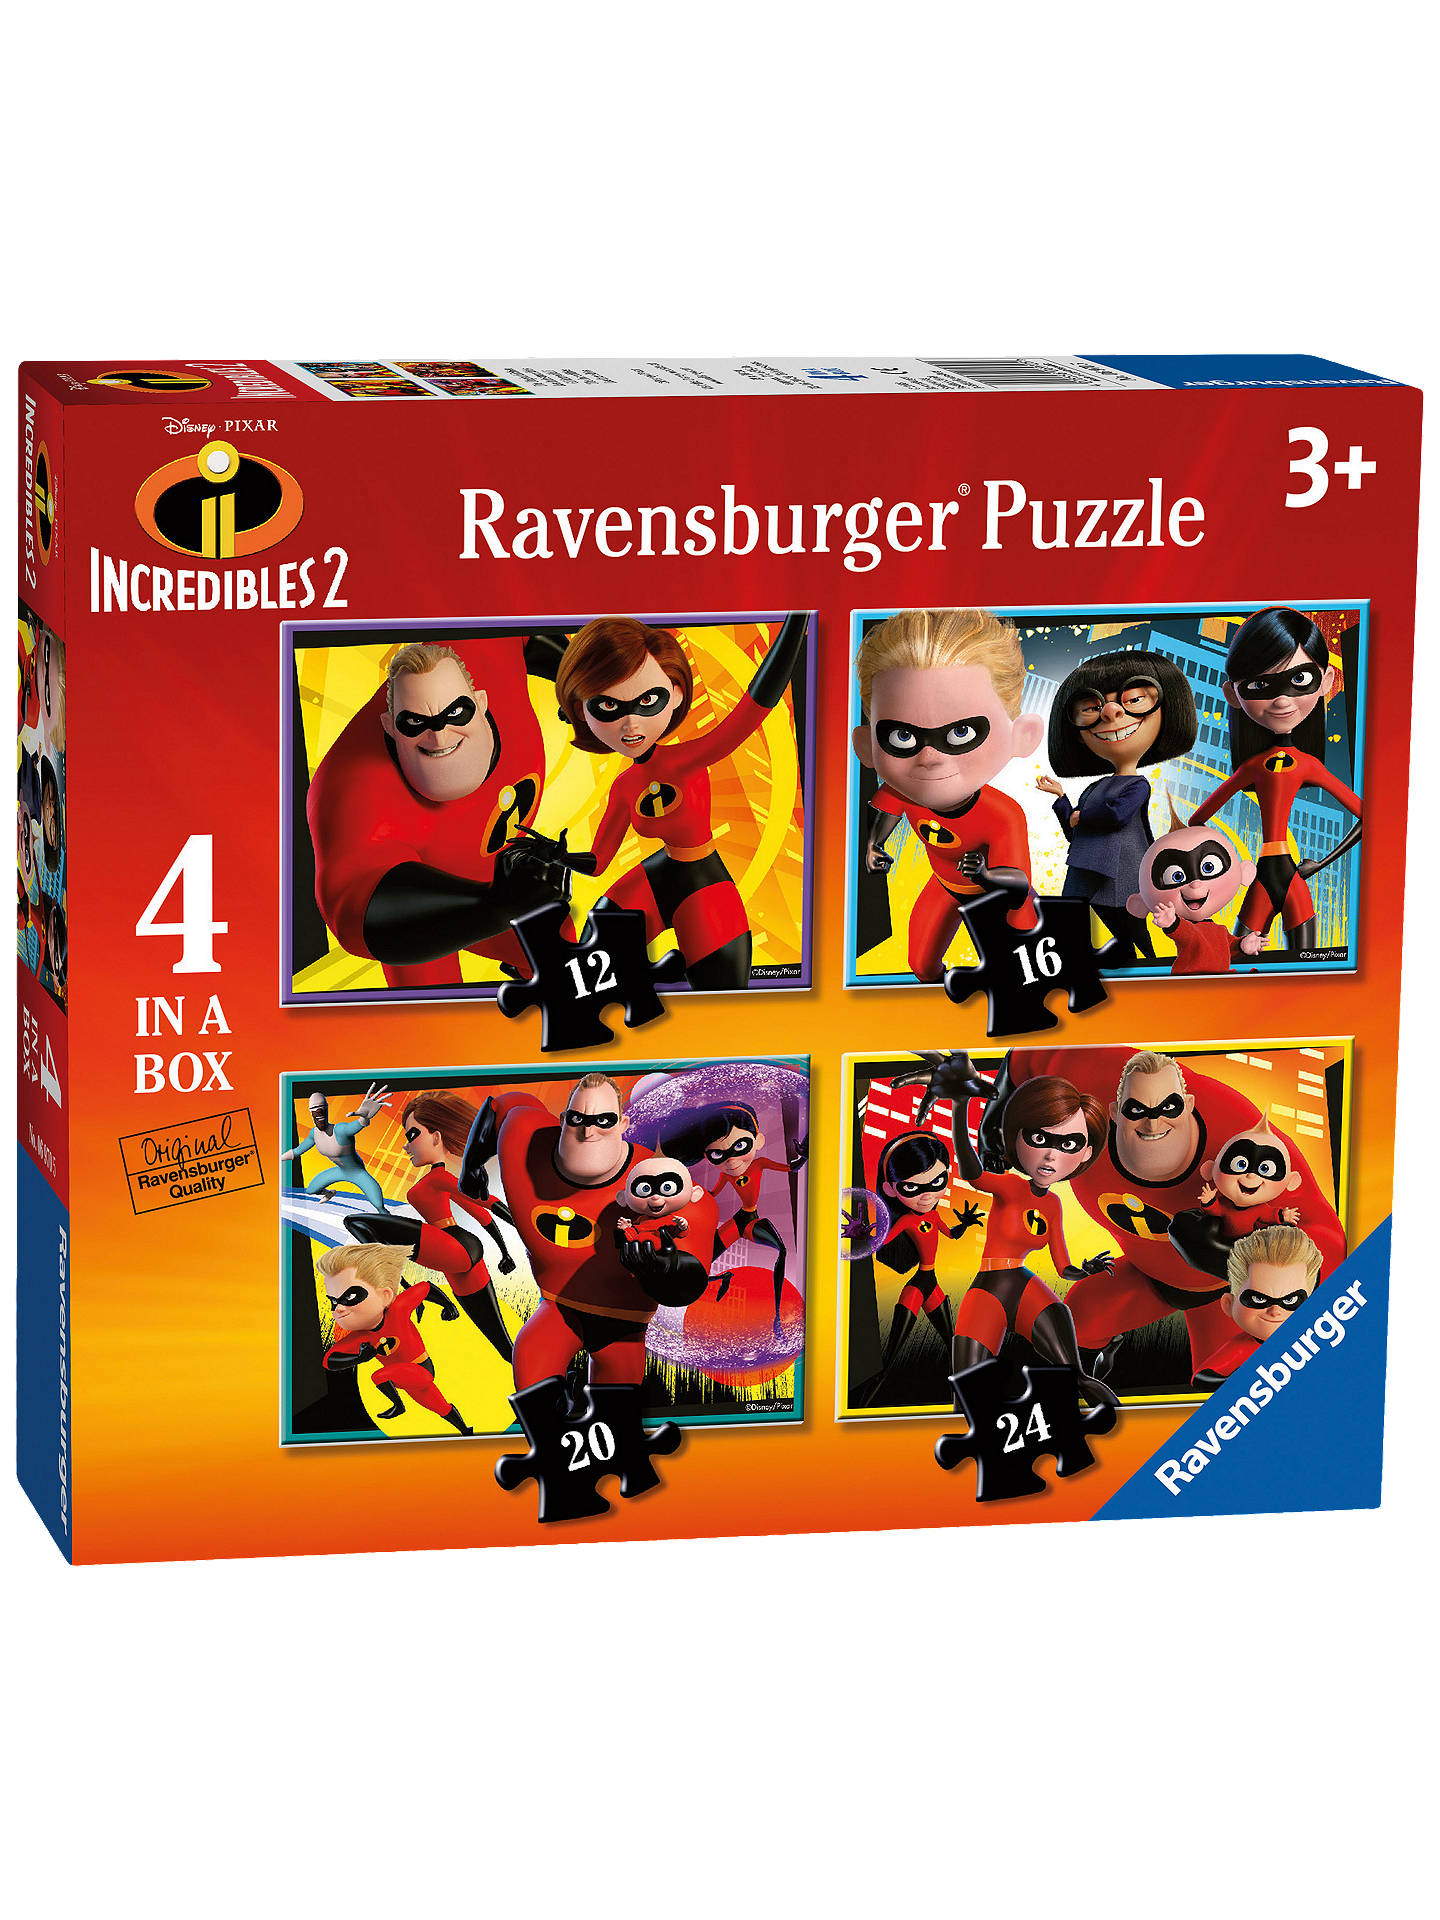 BuyRavensburger Incredibles 2 4-in-a-Box Jigsaw Puzzles Set Online at johnlewis.com